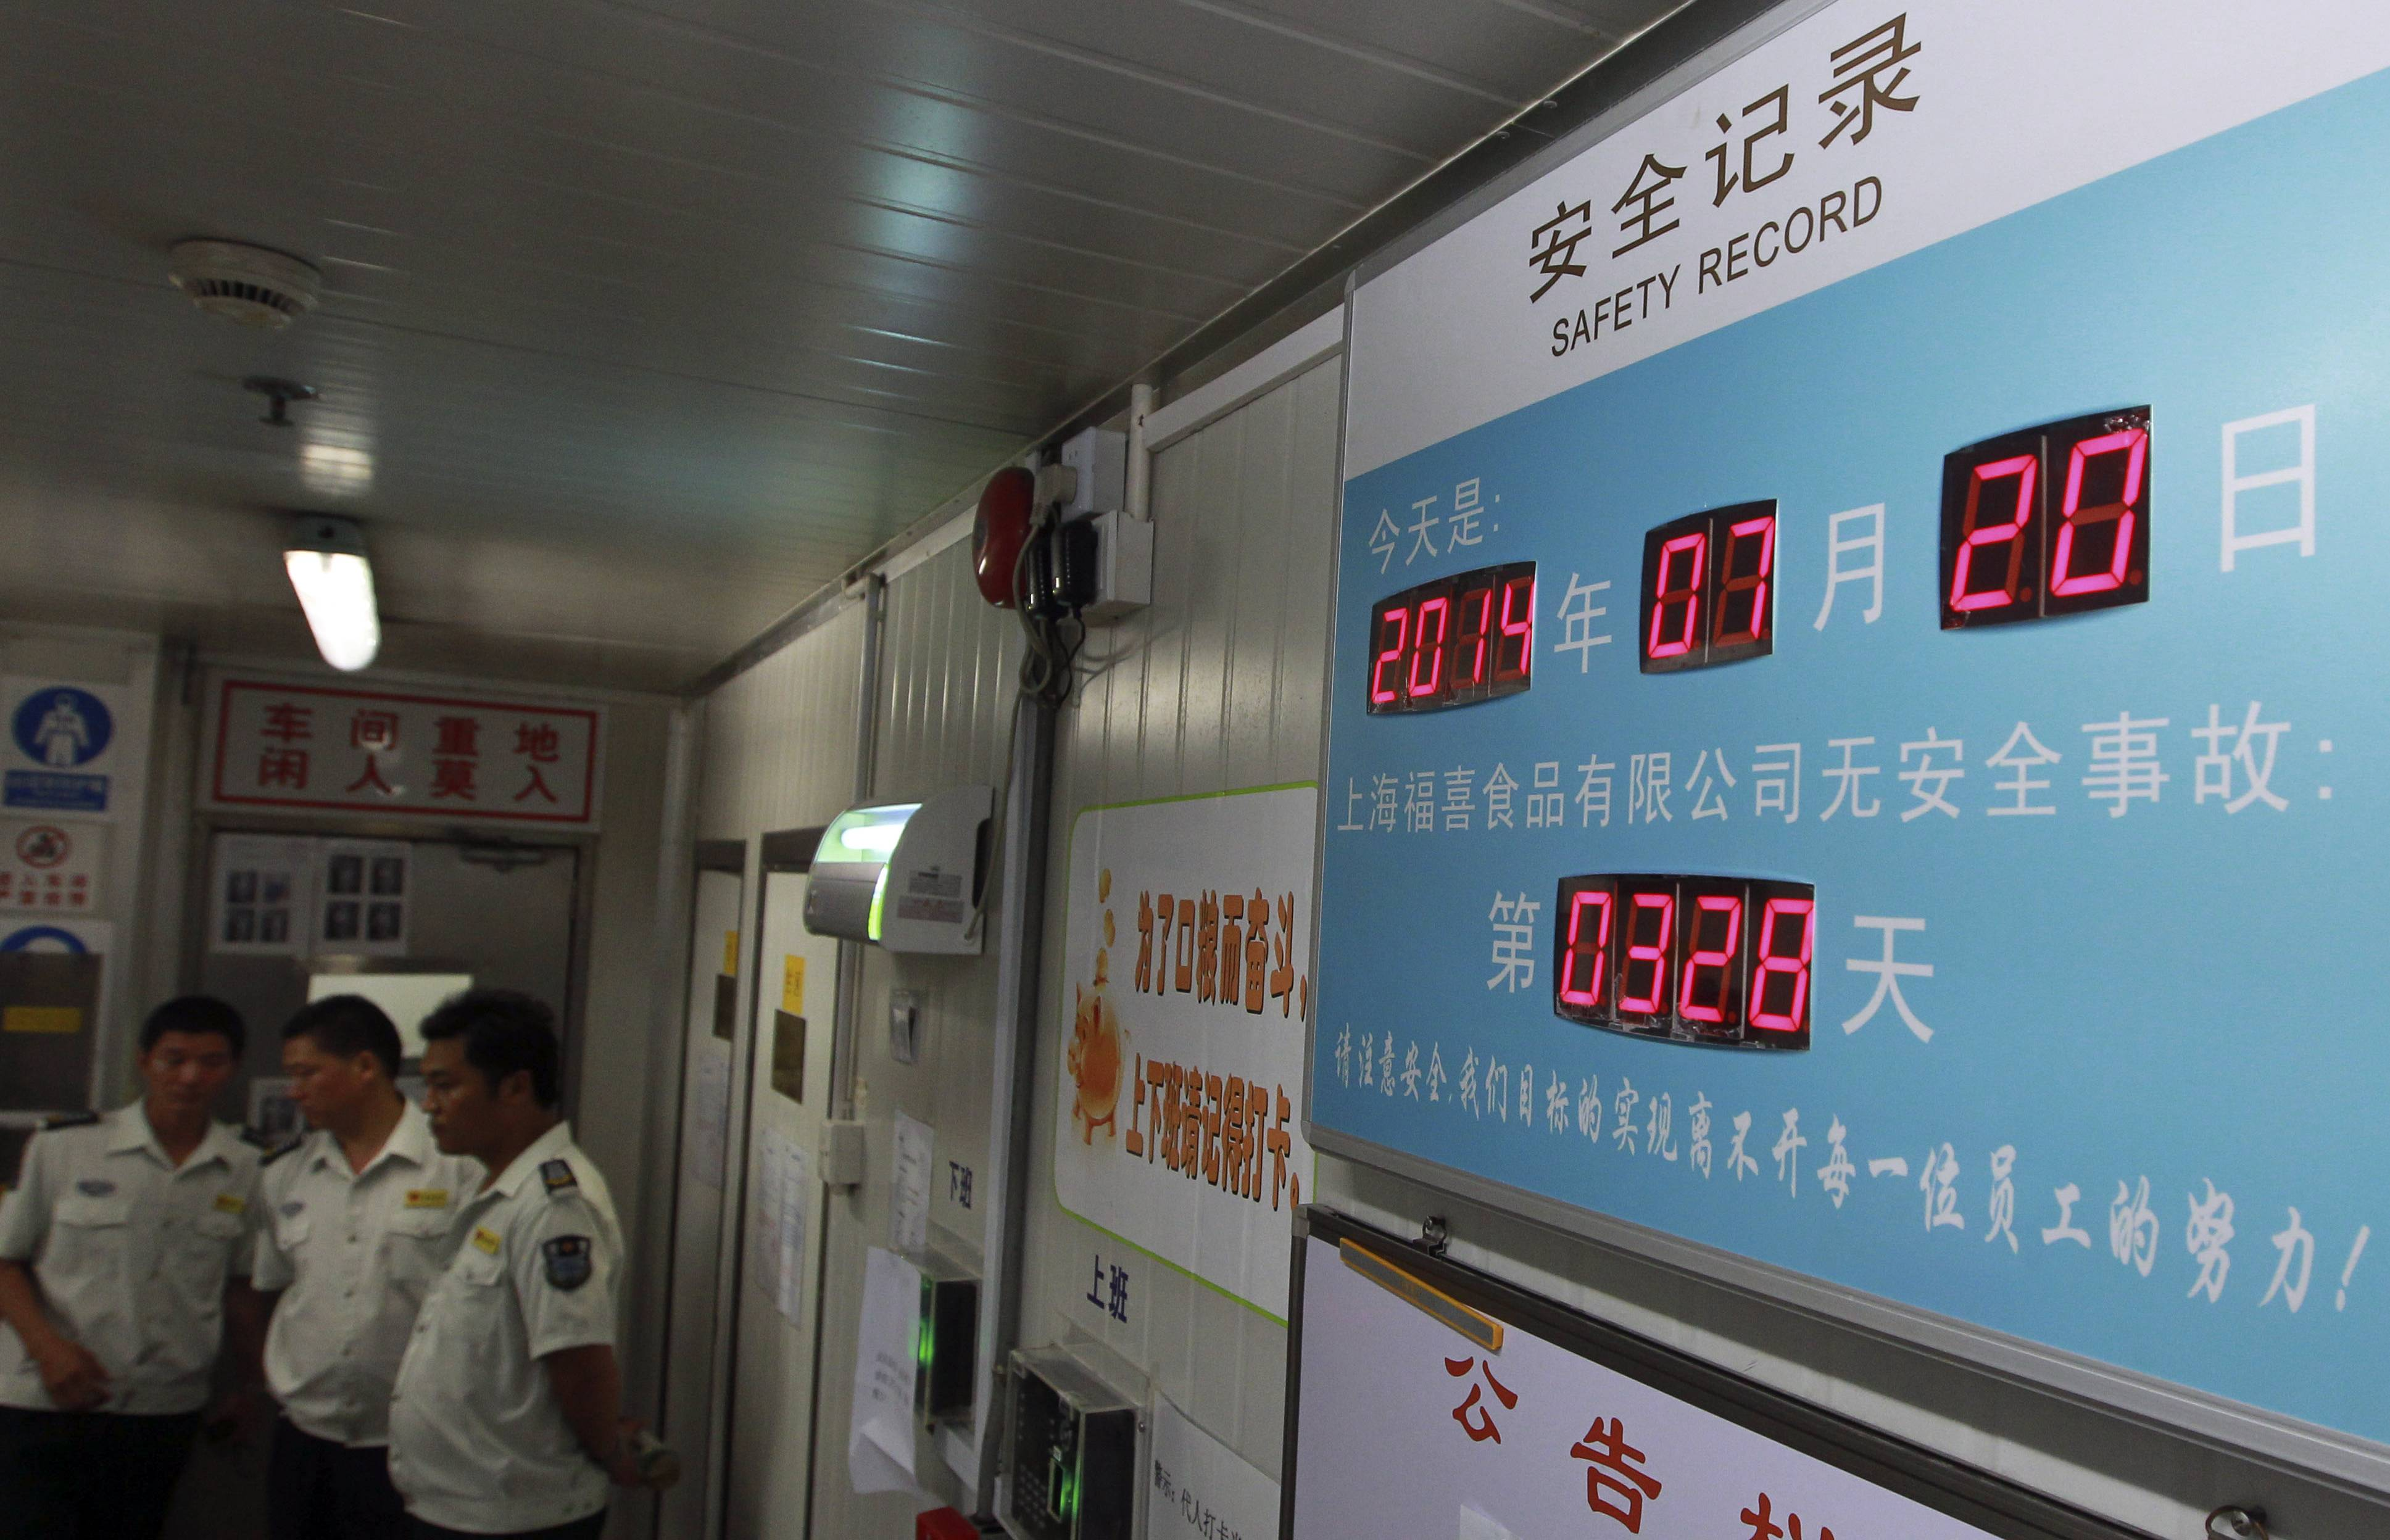 An electronic screen shows the safety record of Shanghai Husi Food Co., a meat supplier owned by an Aurora company for McDonald and KFC, in Shanghai, China.